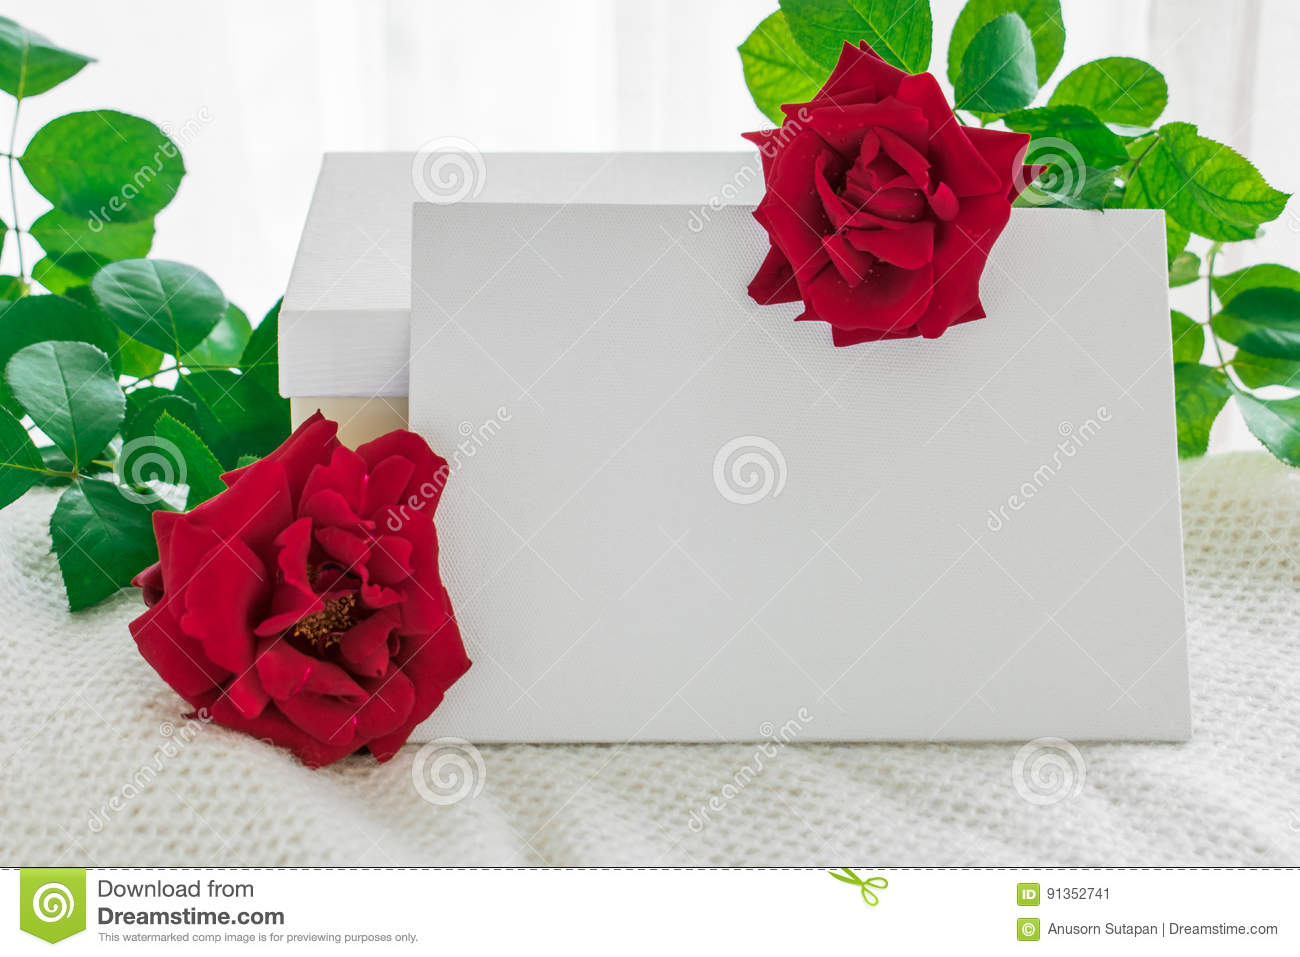 Blank White Frame With Gift Box And Red Rose Flowers On Knitted ...